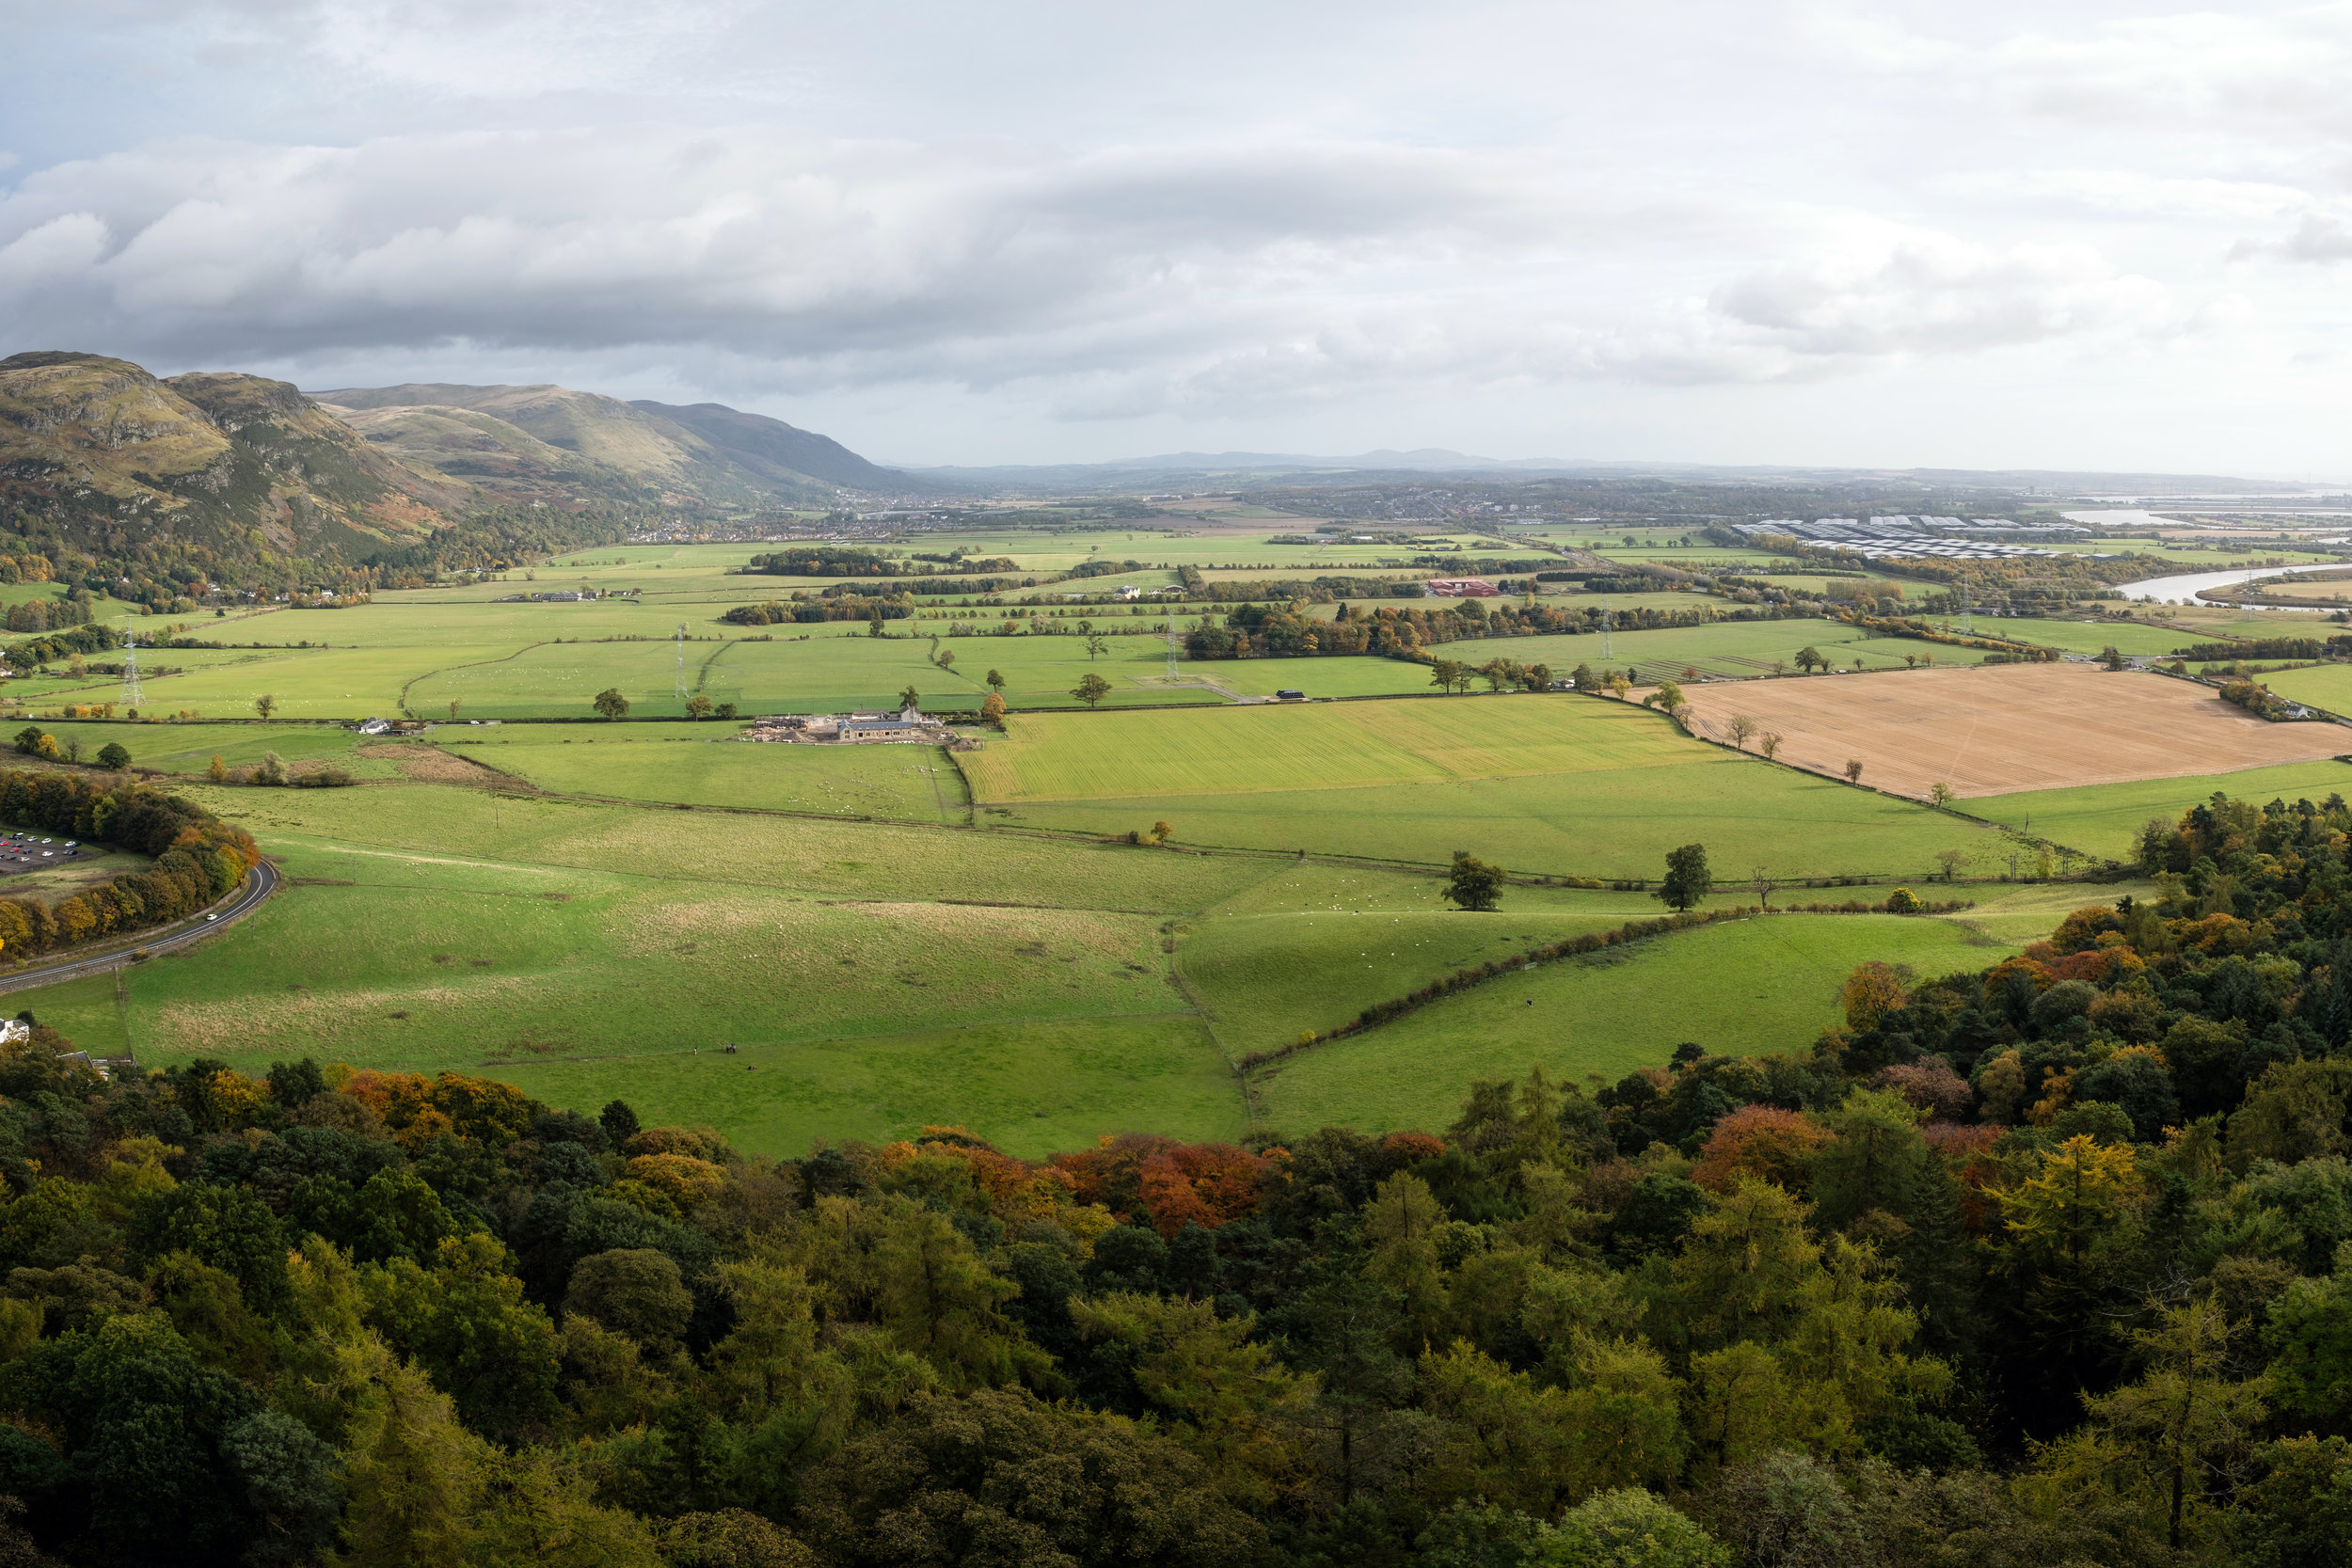 View form the Wallace Monument to the fields where the Scottish defeated the English in 1297